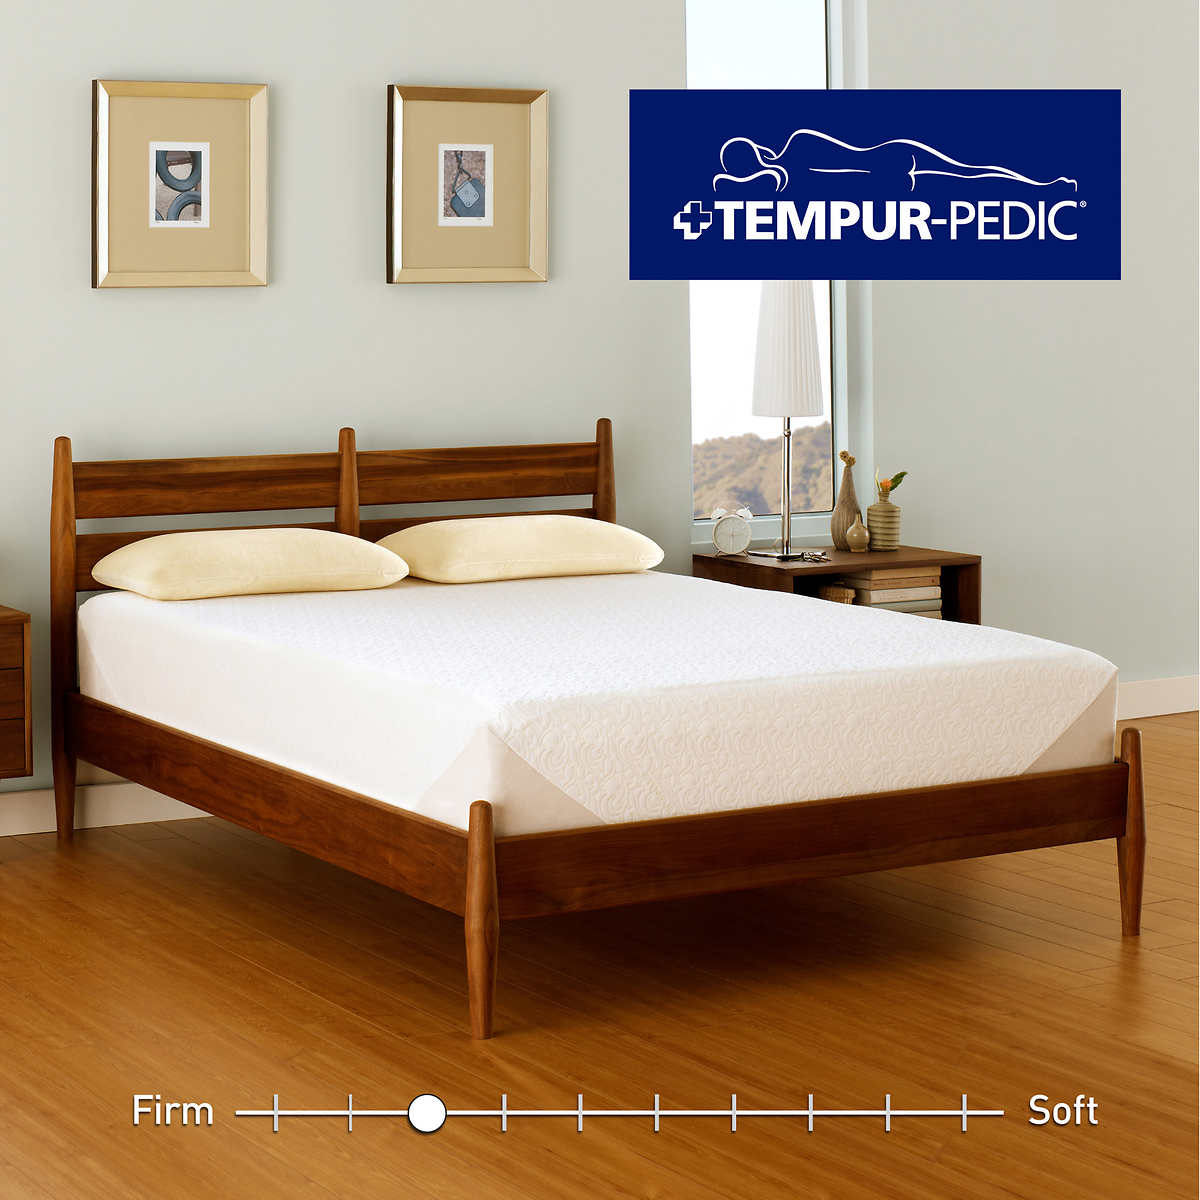 click to zoom - Bed Frame For Tempurpedic